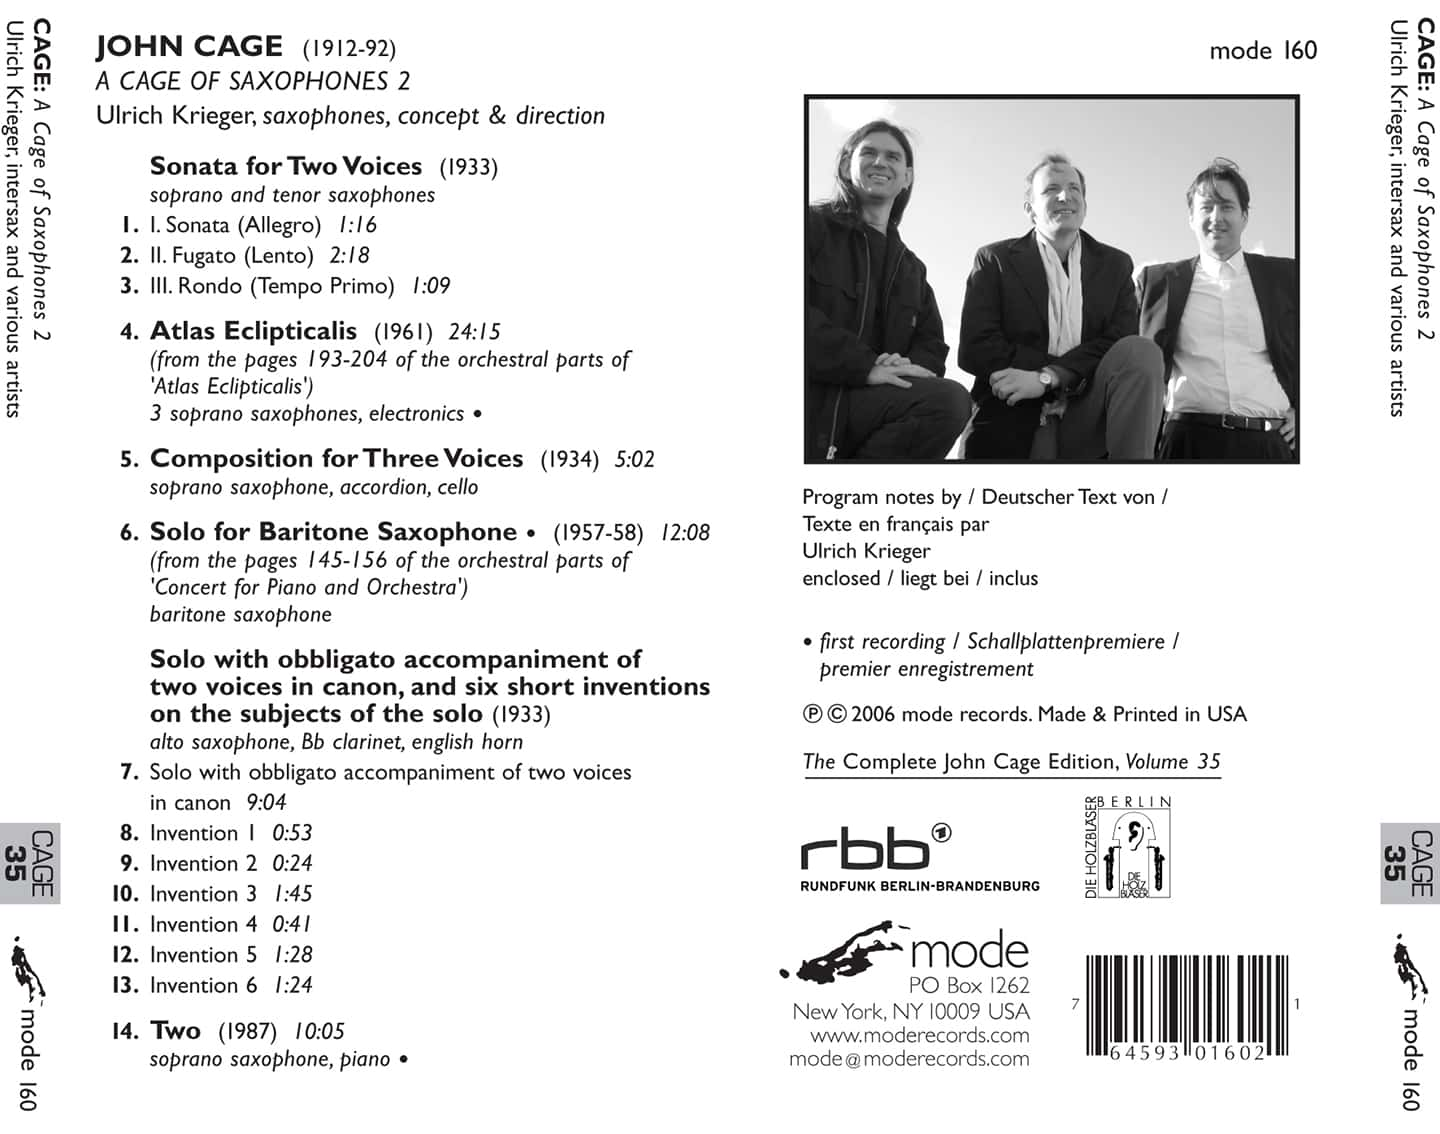 Cage Edition 35–A Cage Of Saxophones 2